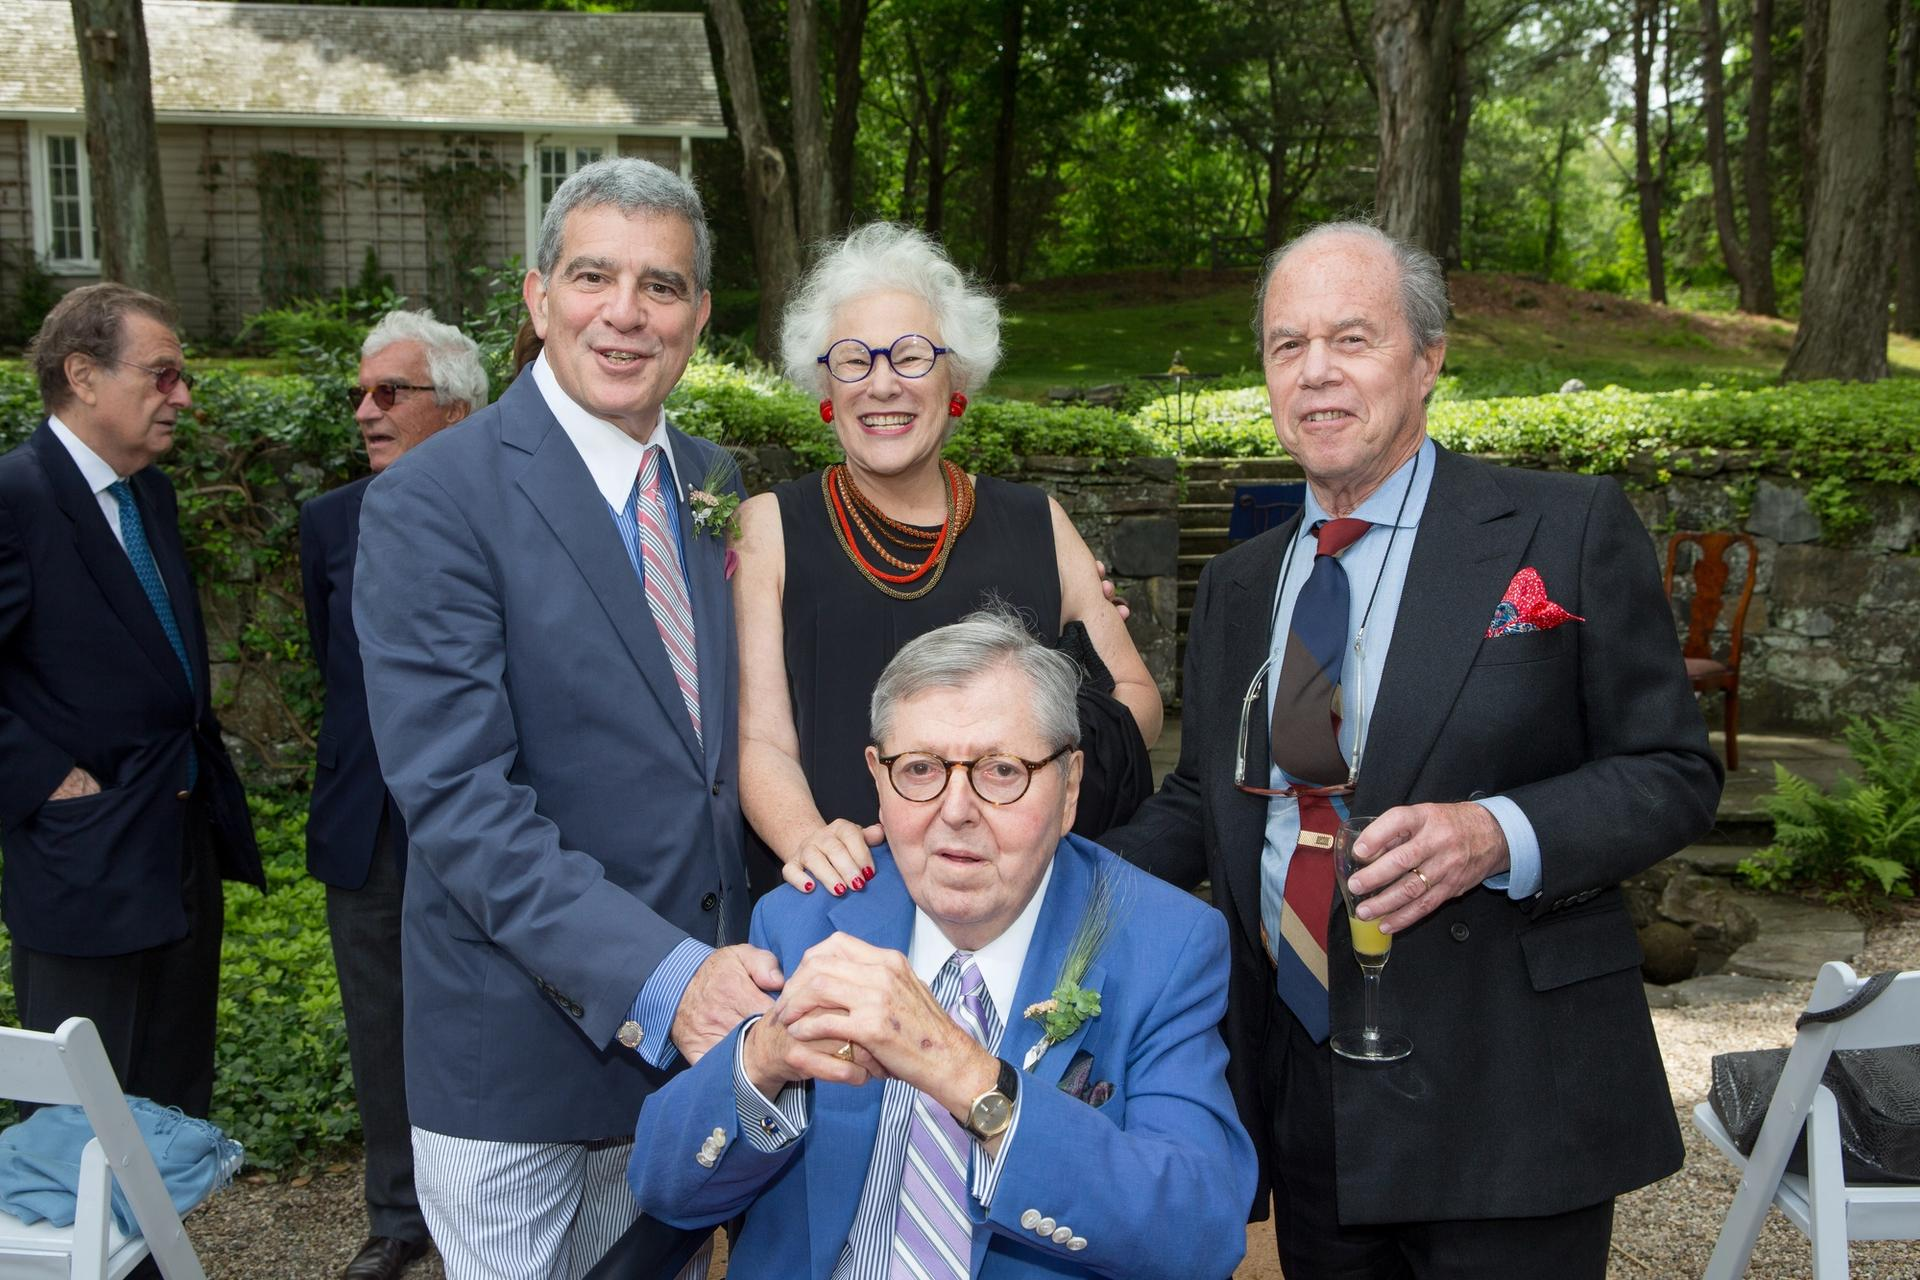 Seated,  the late Charles Bergman, who headed the Pollock-Krasner Foundation as chairman and chief executive. Behind him, from left: his husband, Stuart Levy; Janet Spencer; and her husband, Ronald Spencer, who took over as the foundation's chairman and chief executive this year Joseph Fornabaio